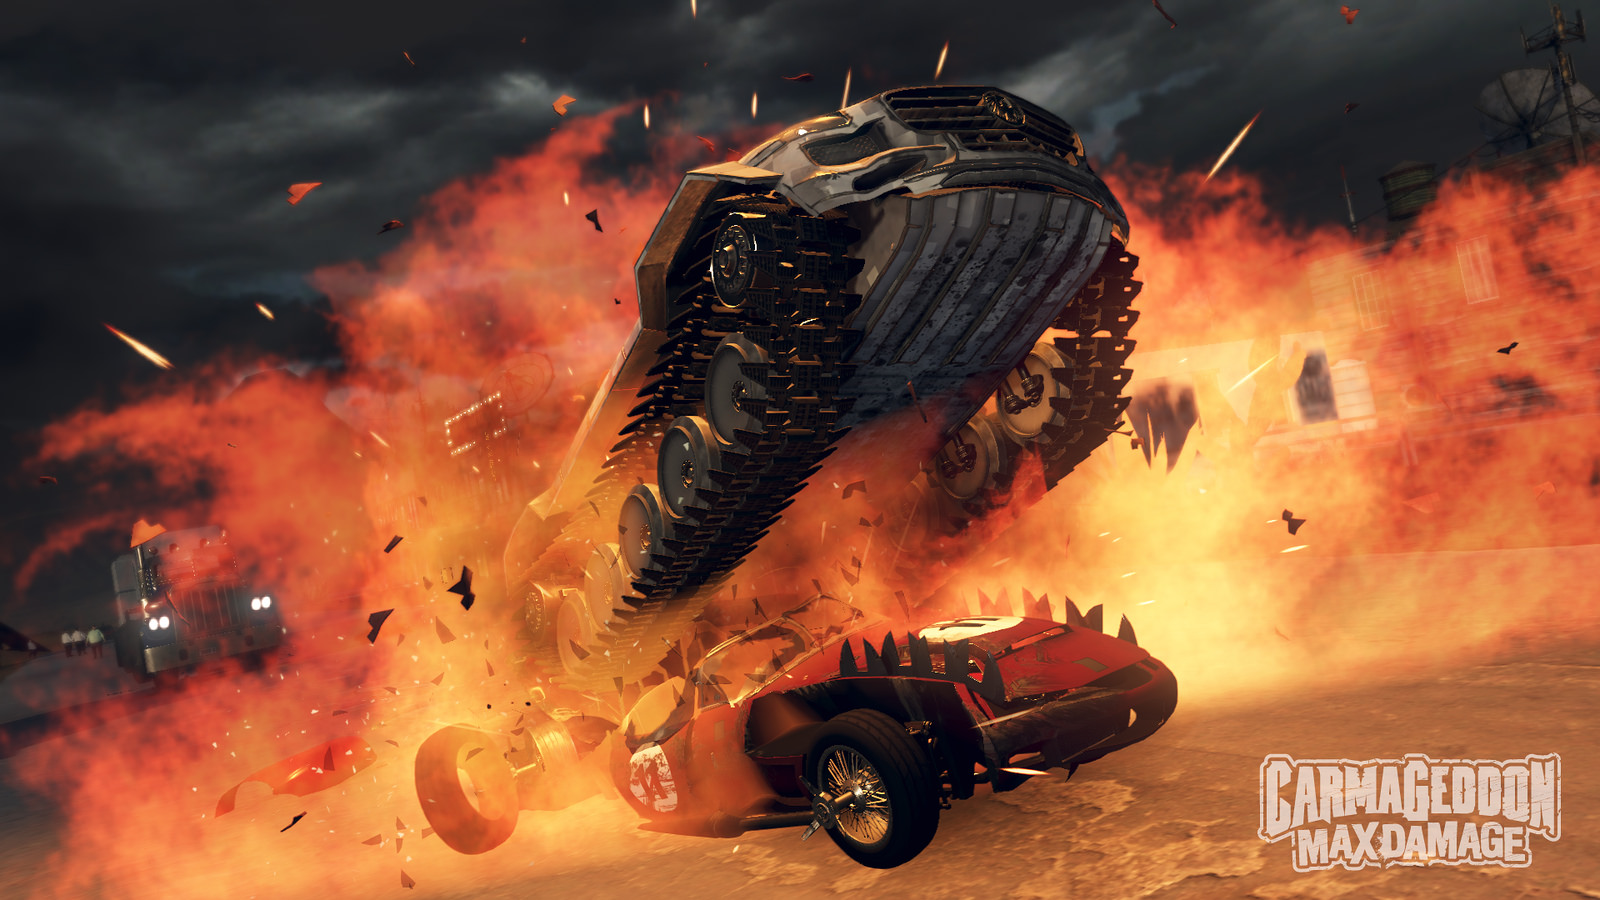 Carmageddon Max Damage screenshot explosion